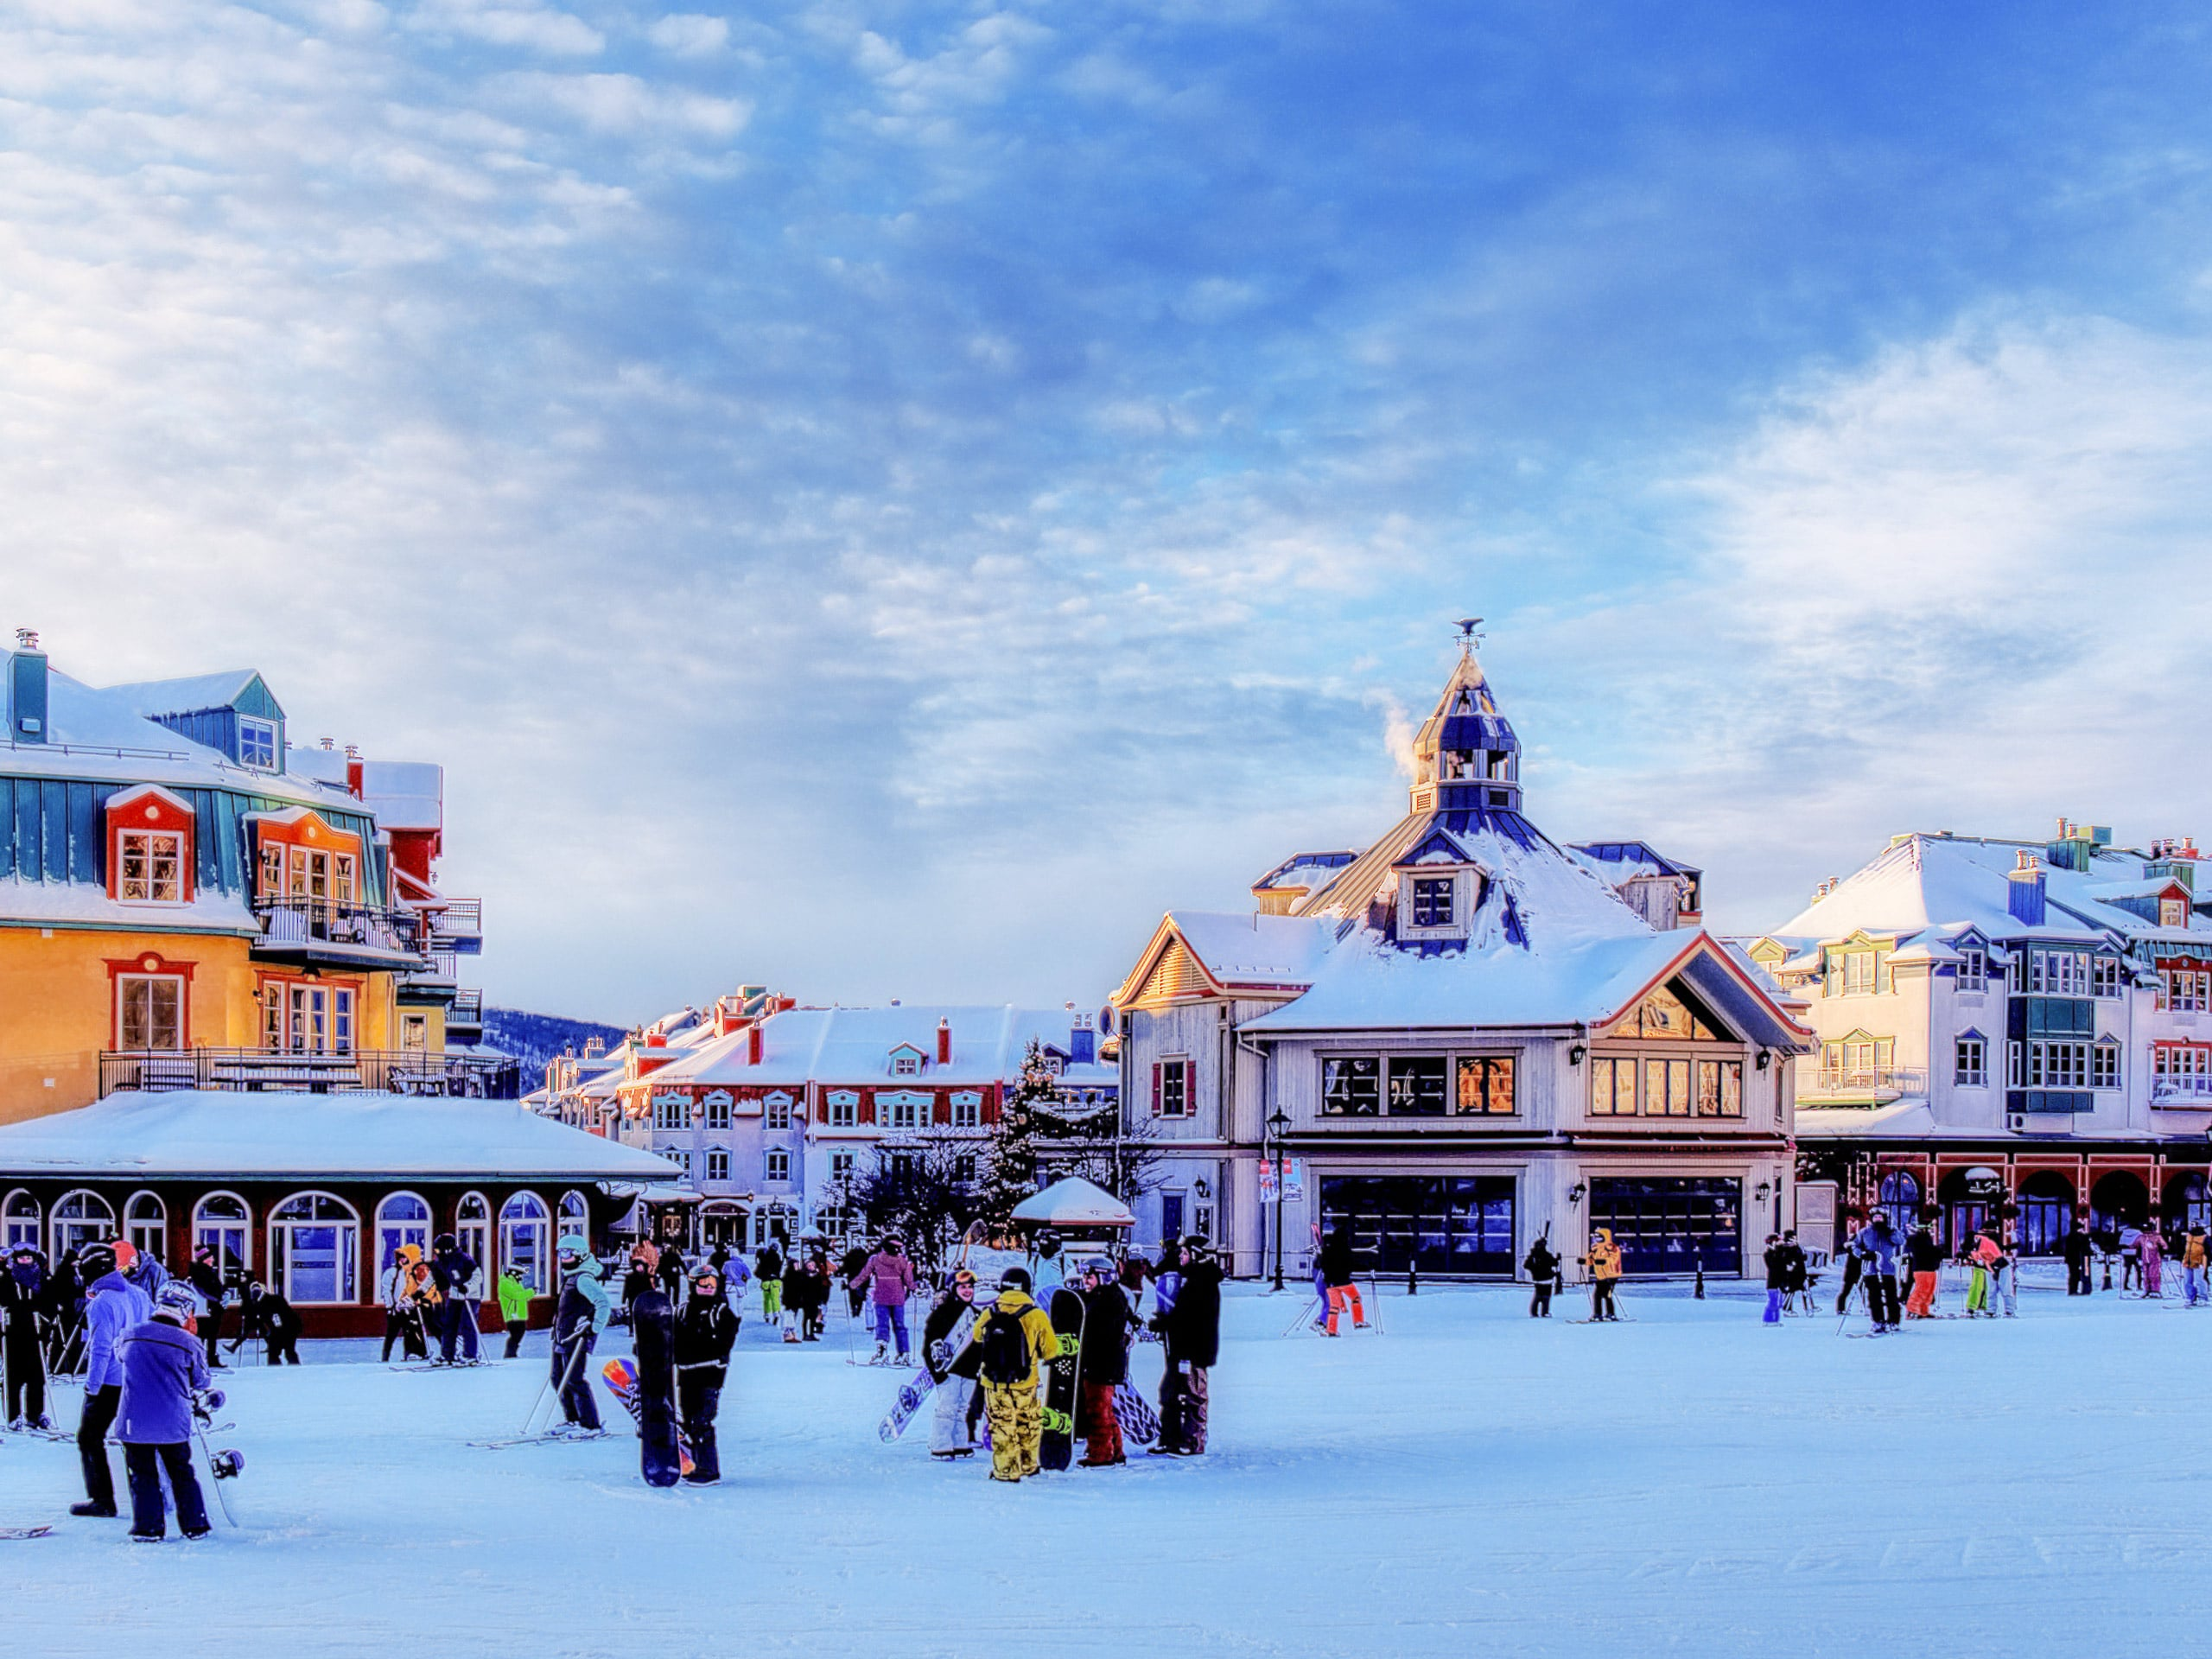 Mont Tremblant village in winter skiing snowboarding in Quebec Canada